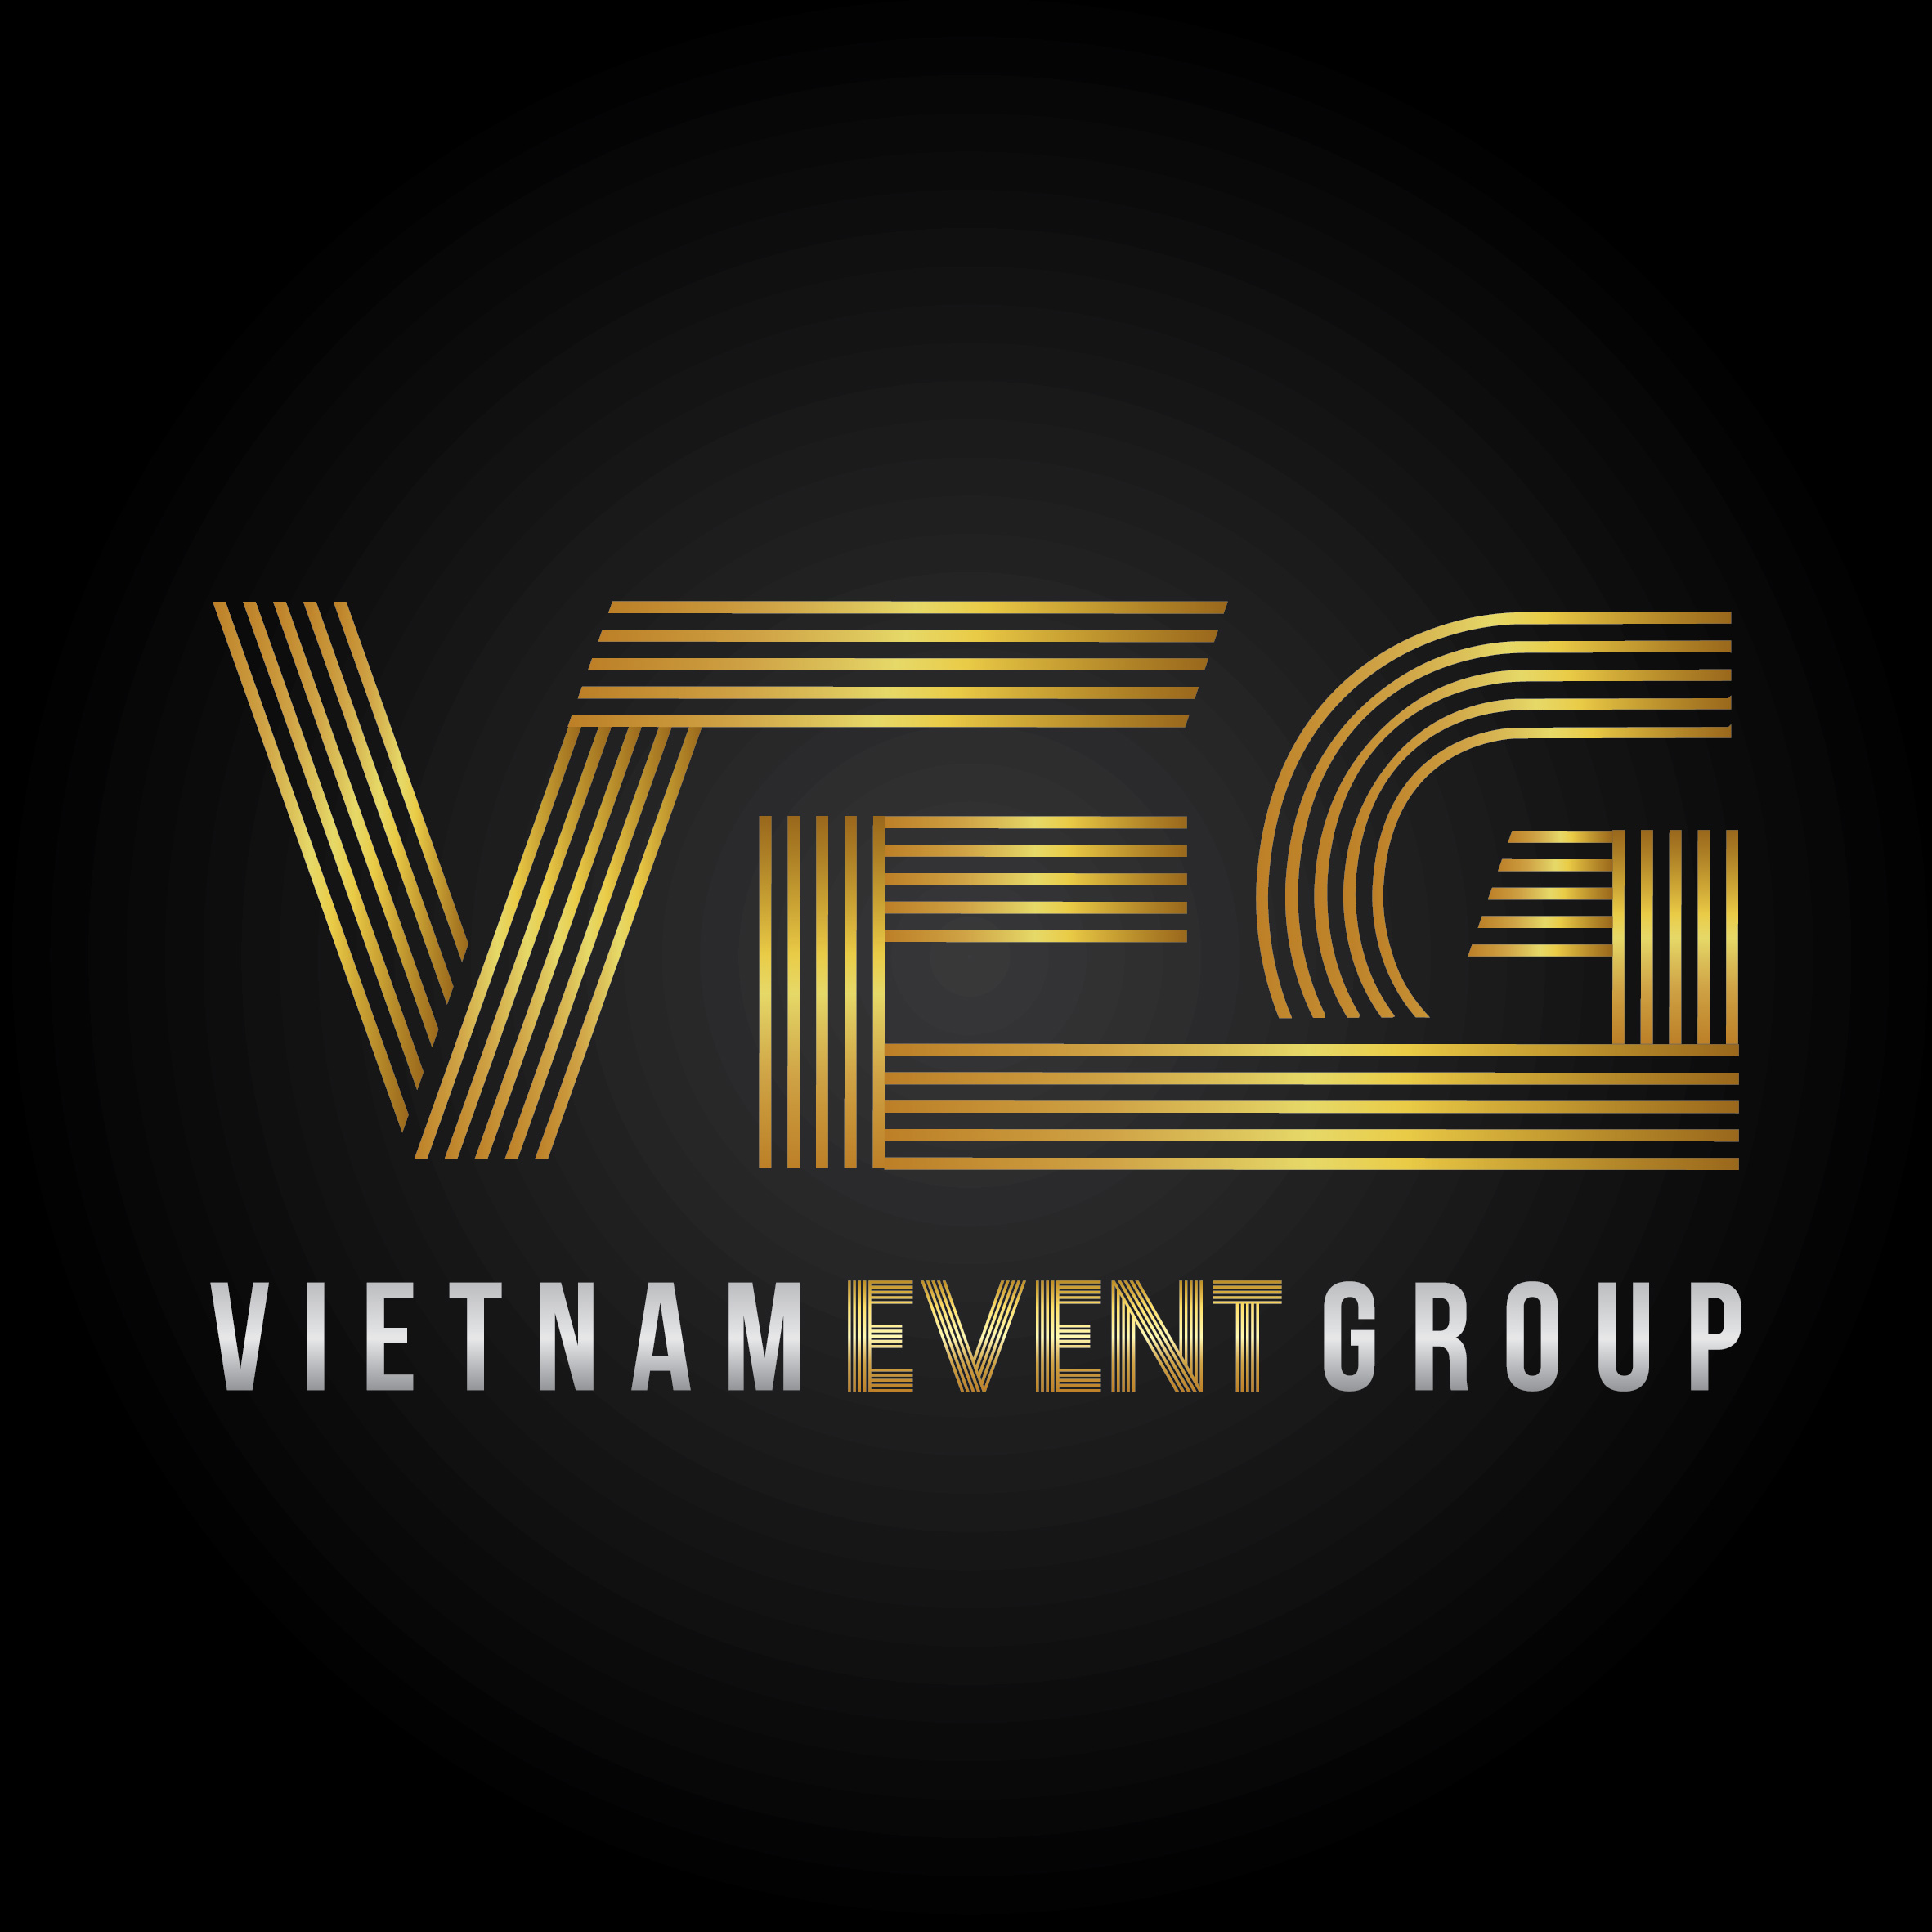 VietNam Event Group - VEG Logo